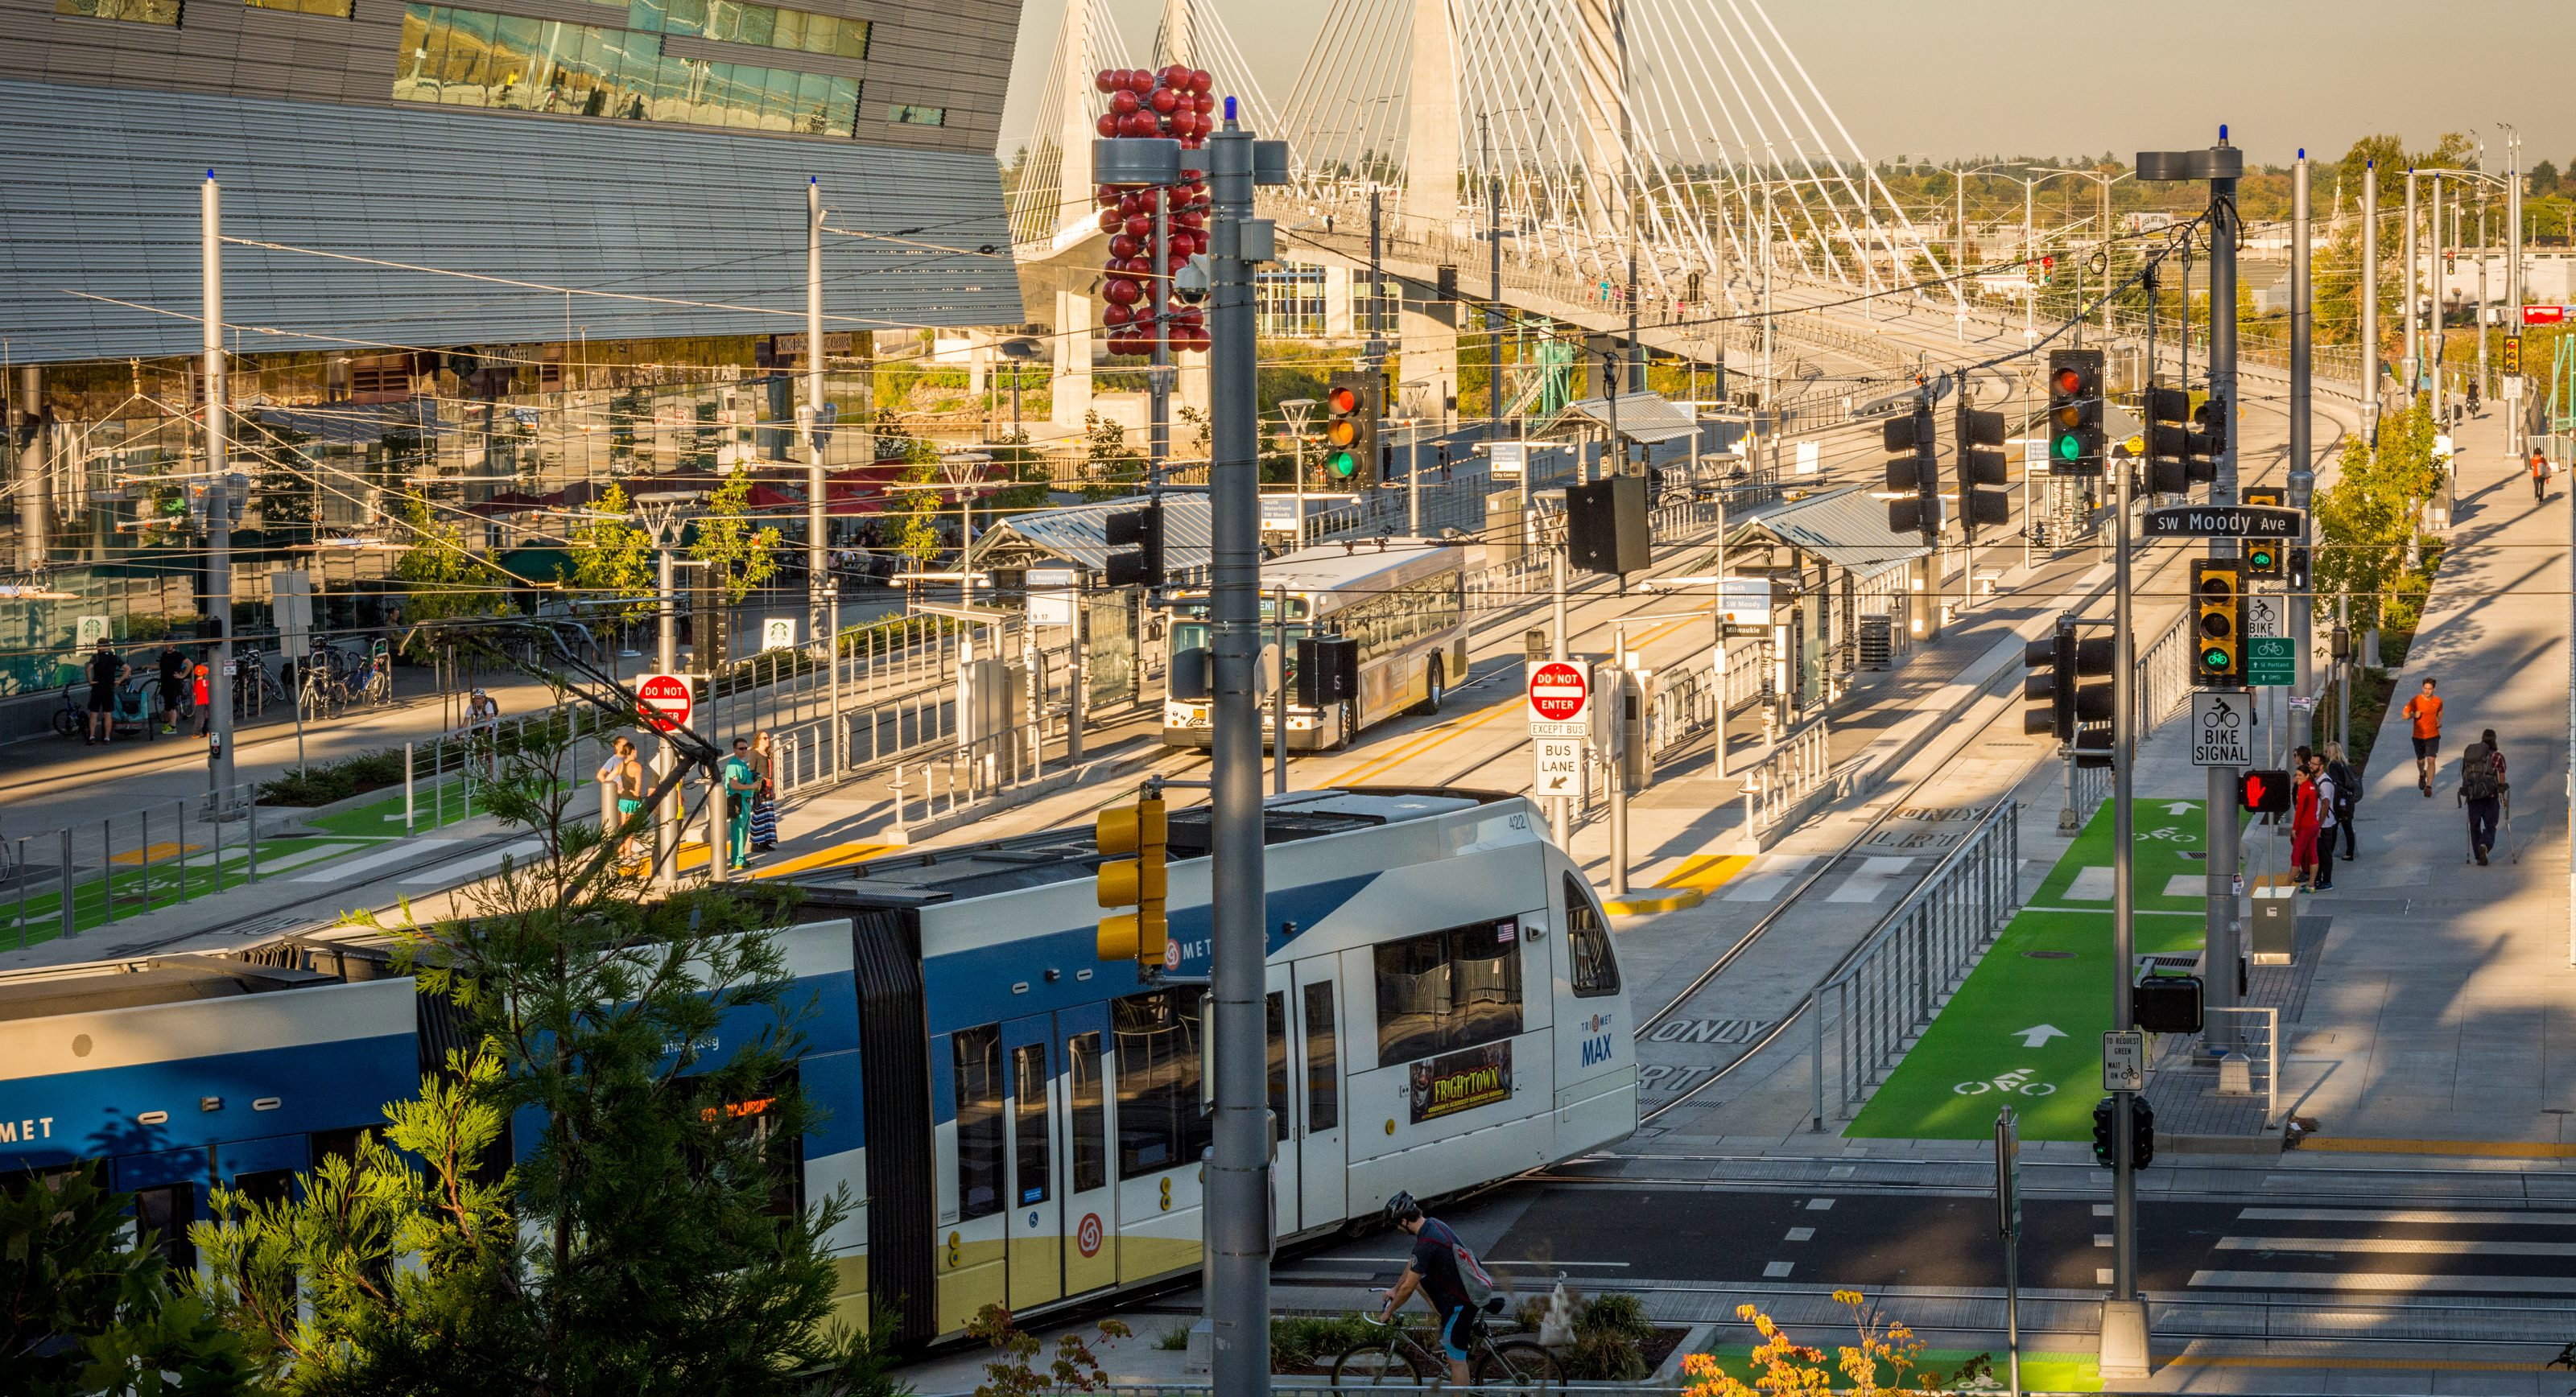 Pictured is the Tilikum Crossing Bridge in Portland, OR which serves buses and light rail and has bike baths and walkways for people.